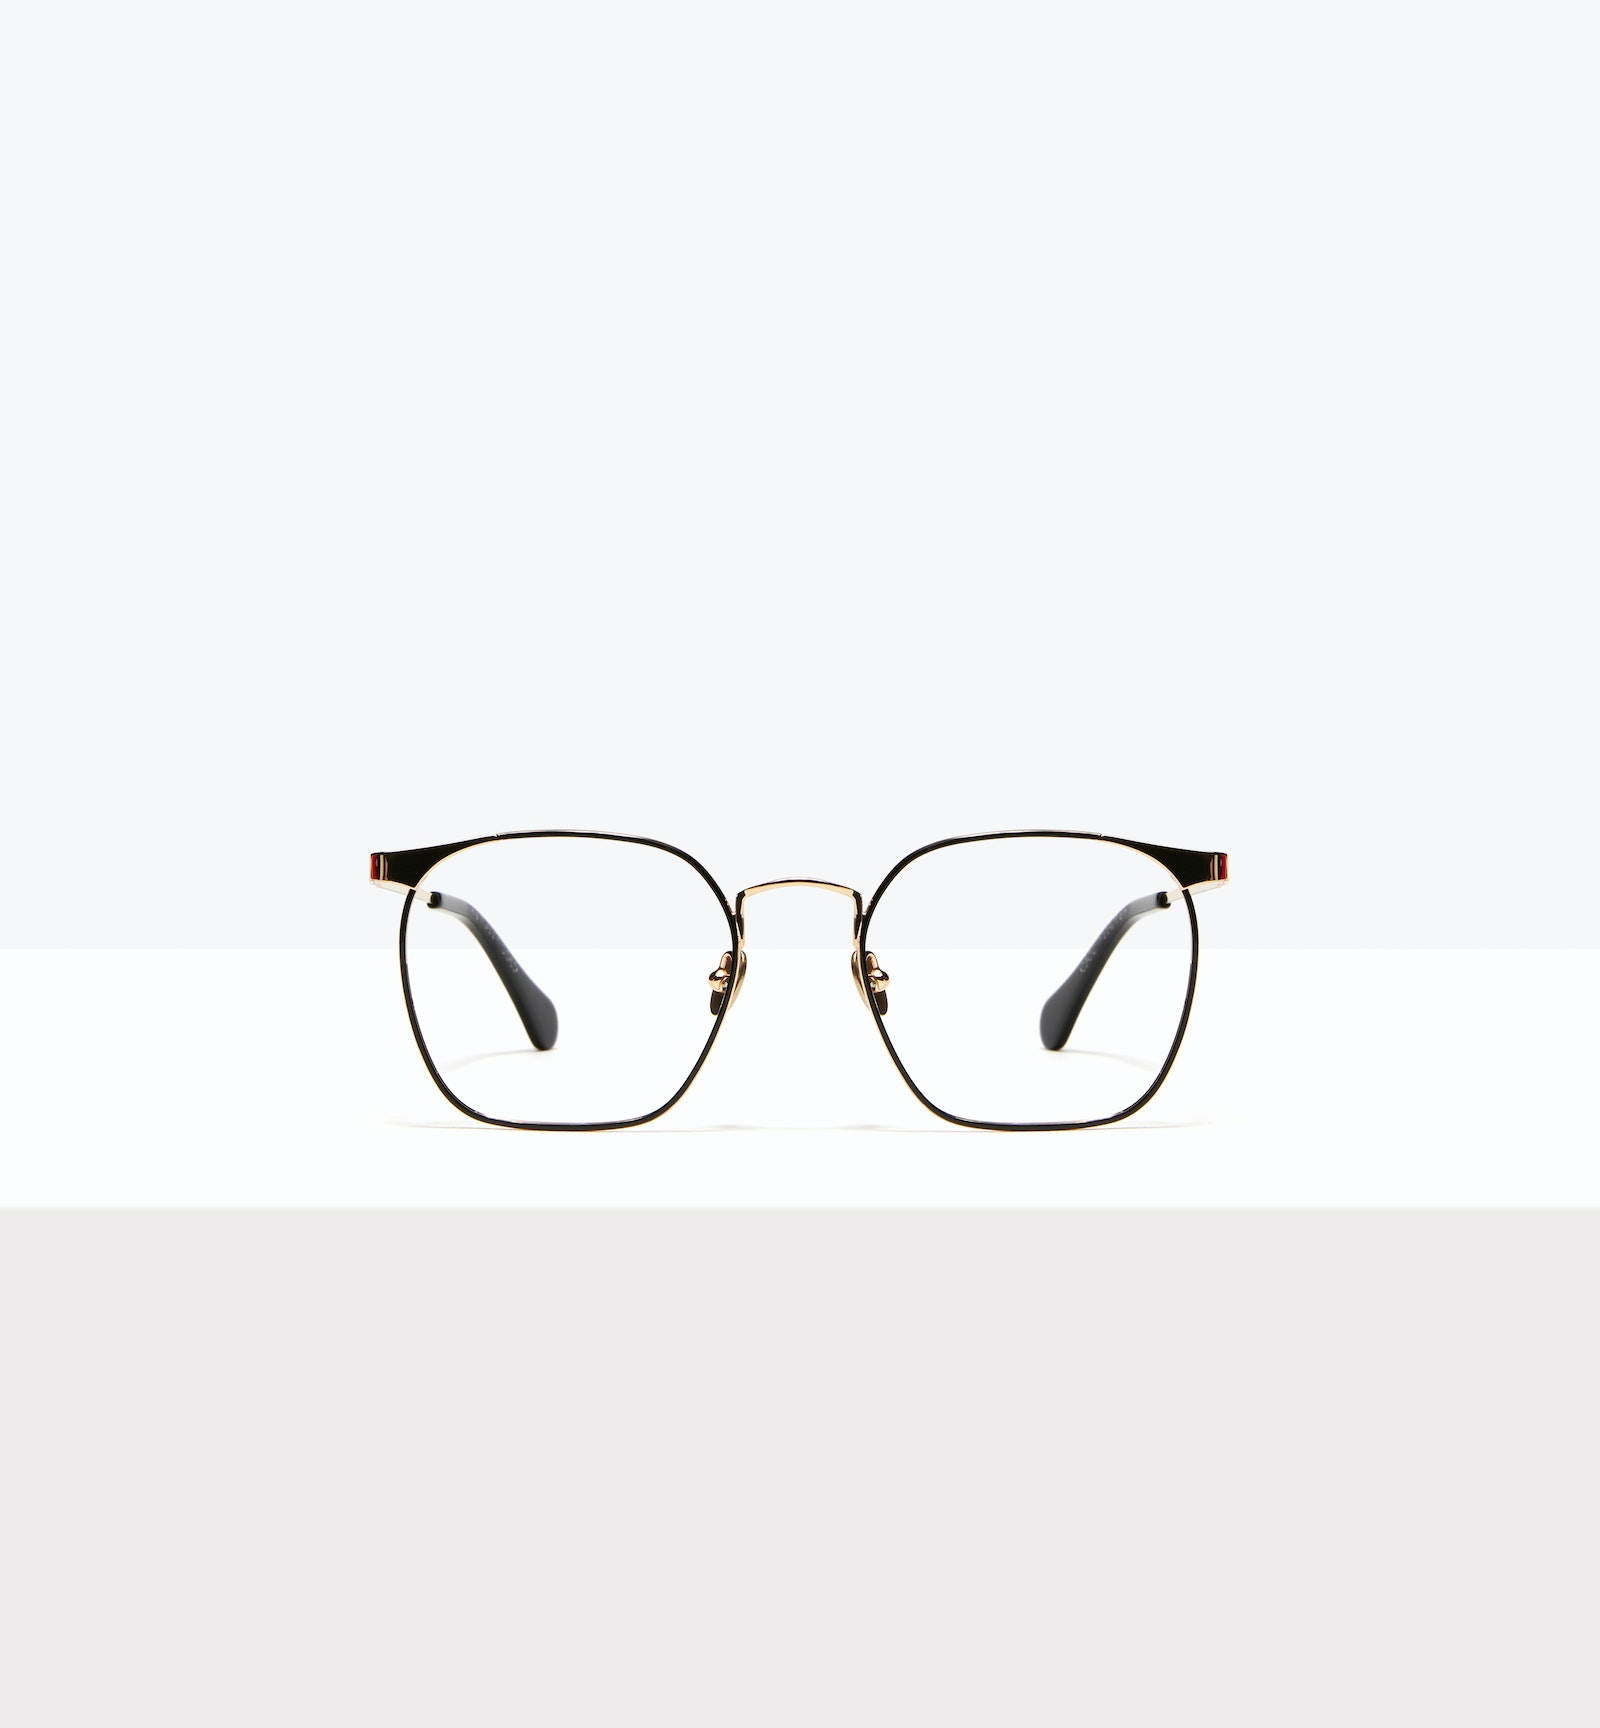 Affordable Fashion Glasses Square Eyeglasses Women Artsy Deep Gold